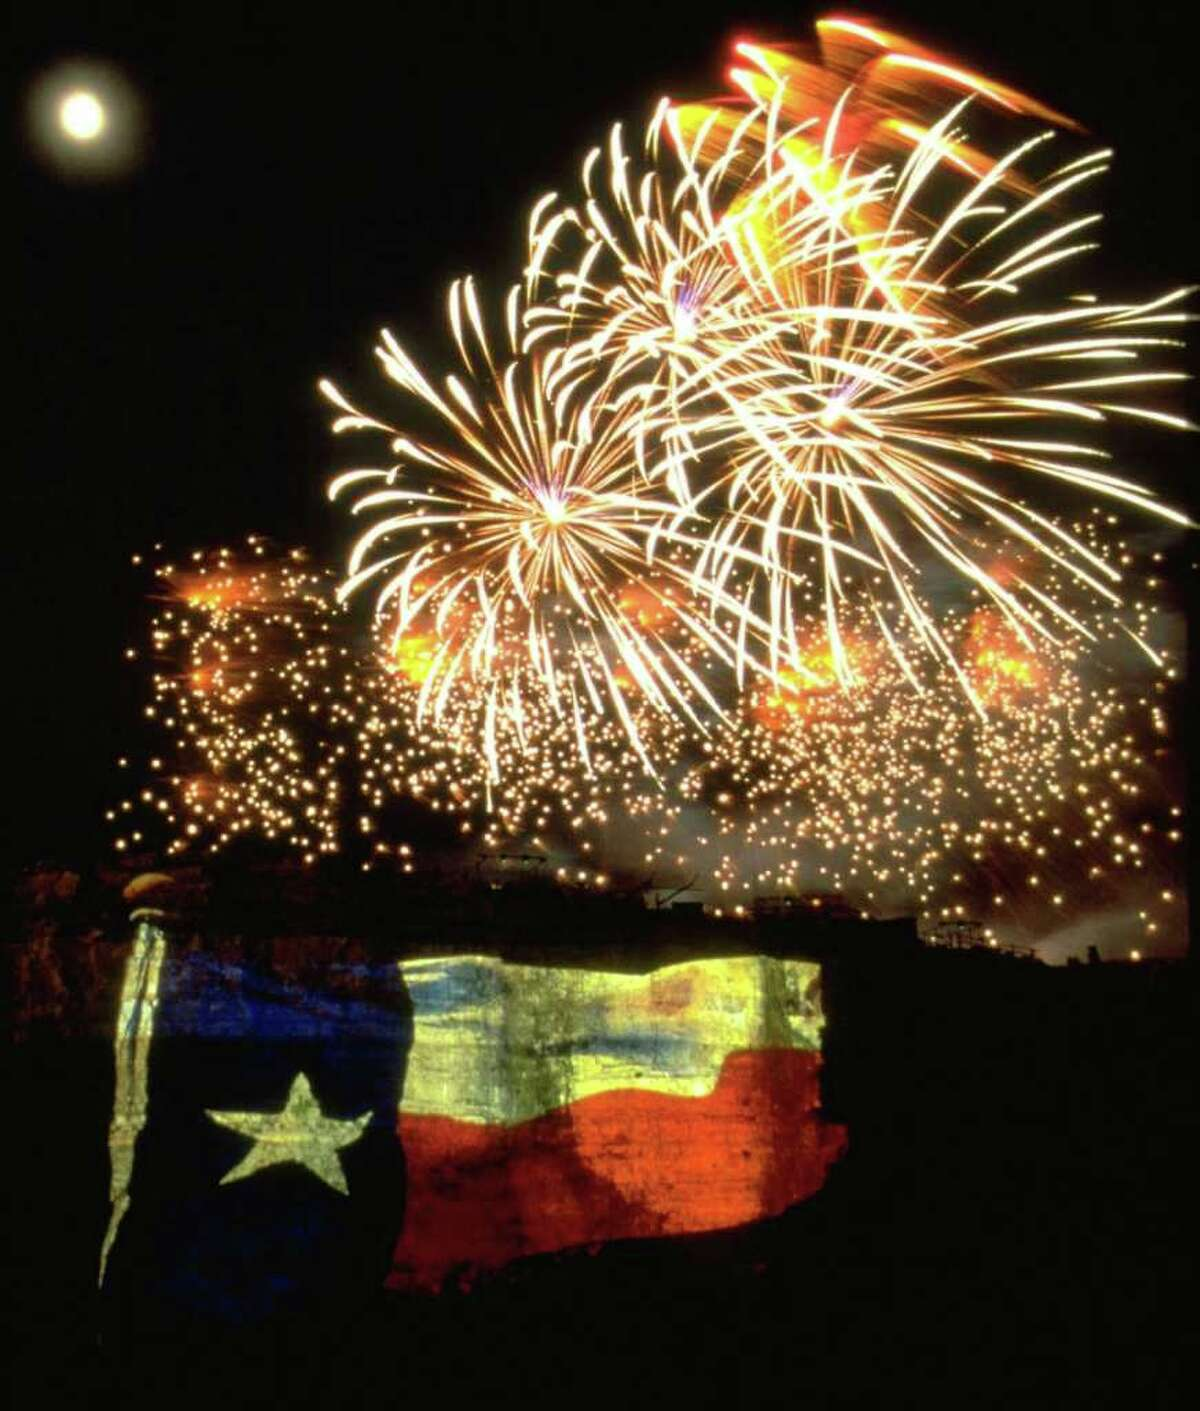 The Lone Star Spectacular fireworks show at Six Flags Fiesta Texas